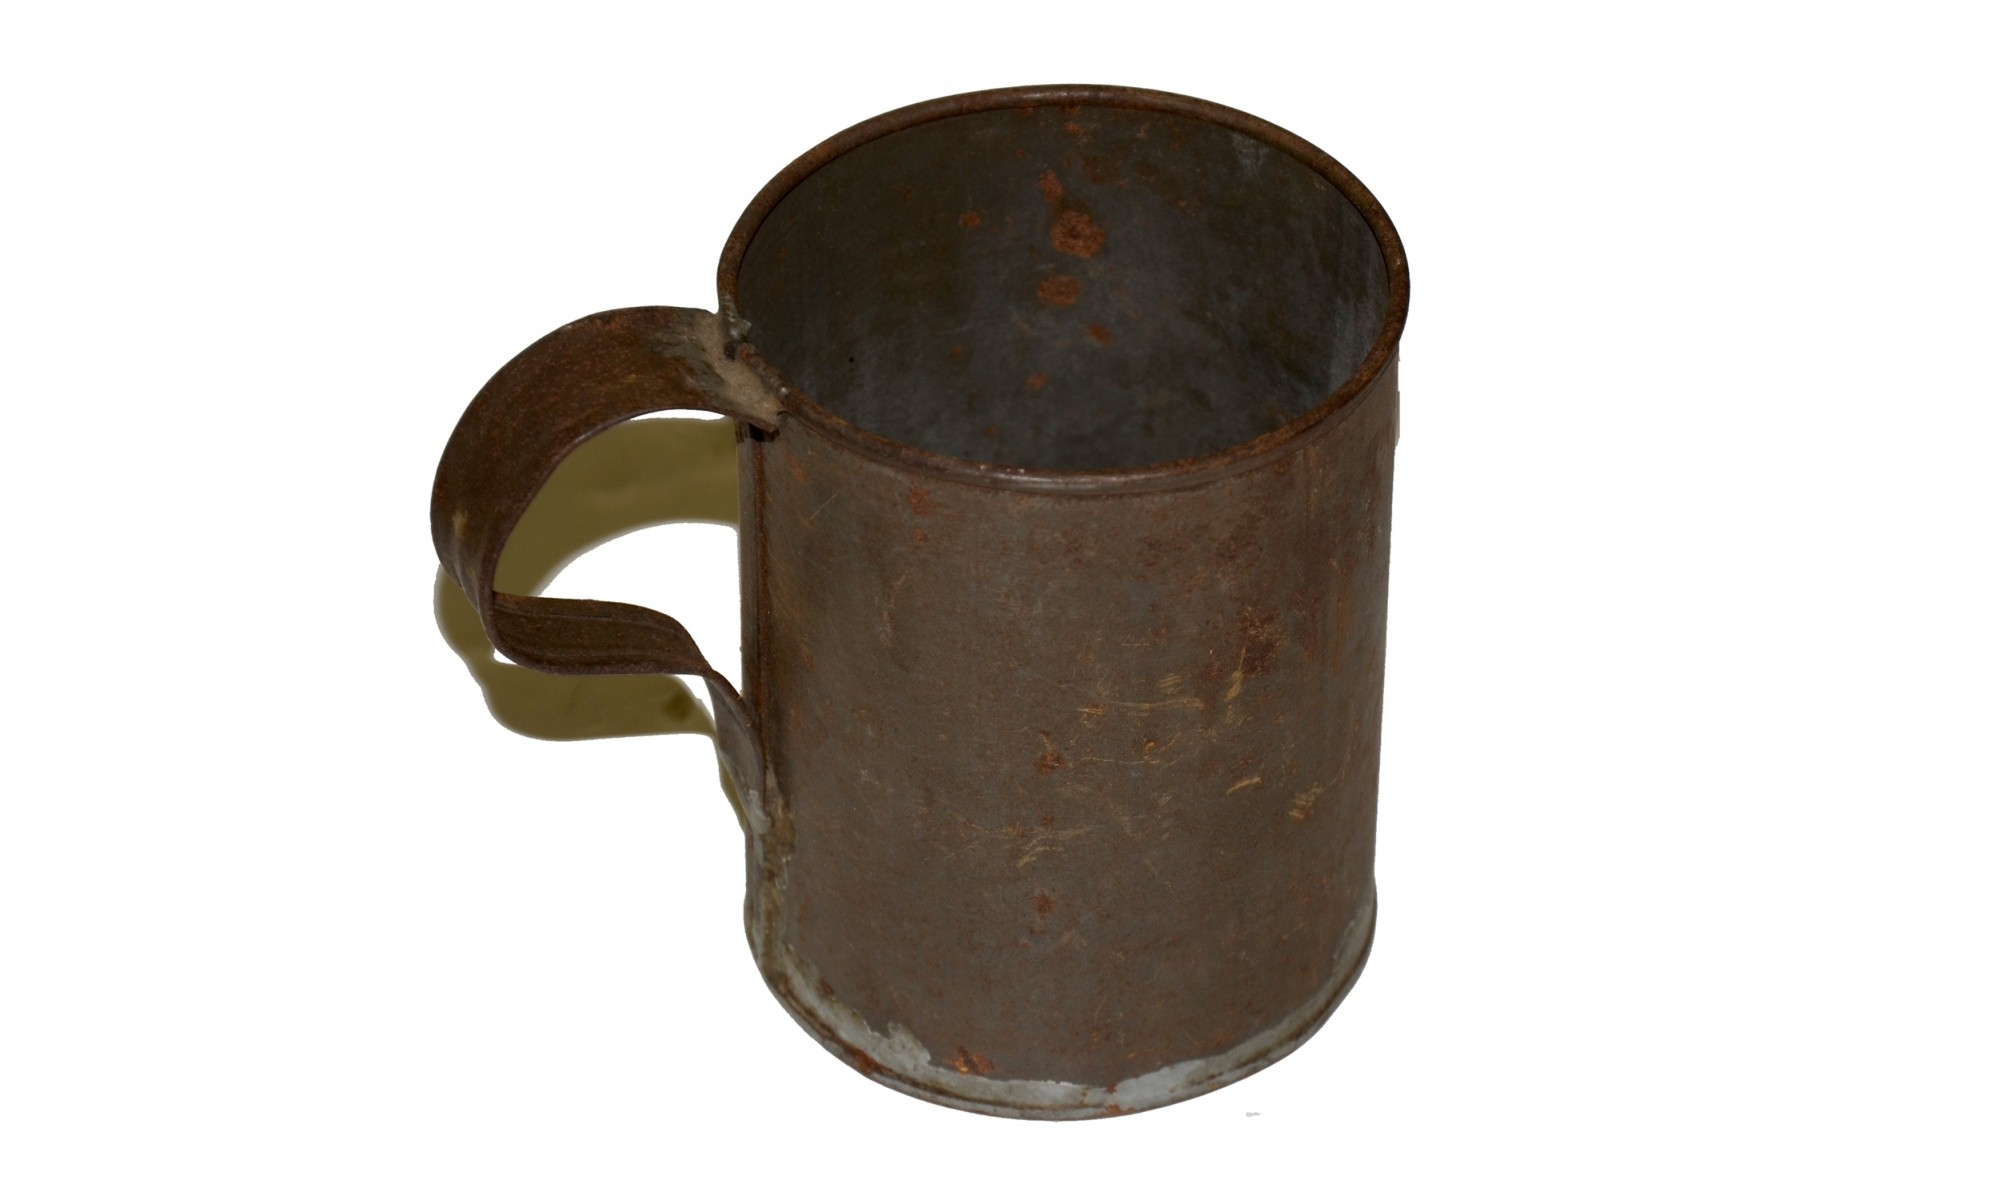 TIN CUP RECOVERED AT GETTYSBURG, FROM THE COLLECTION OF GAR POST #551 IN YORK SPRINGS